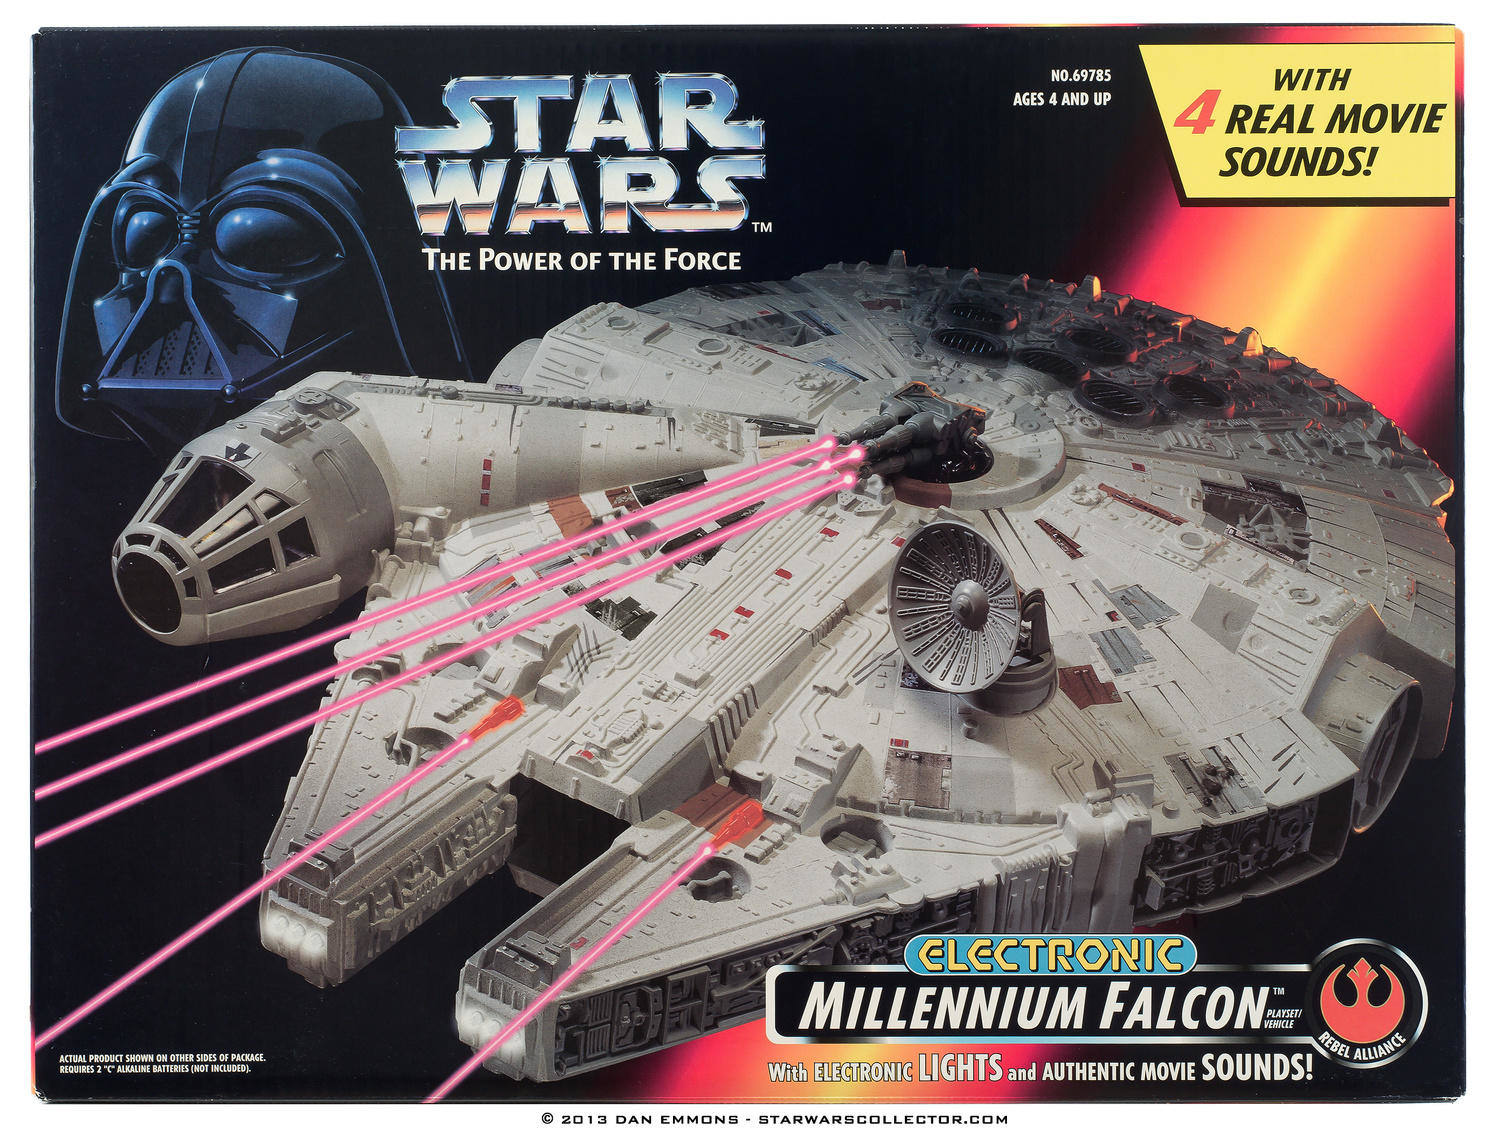 power-of-the-force-2-electronic-millennium-falcon-69785.jpg